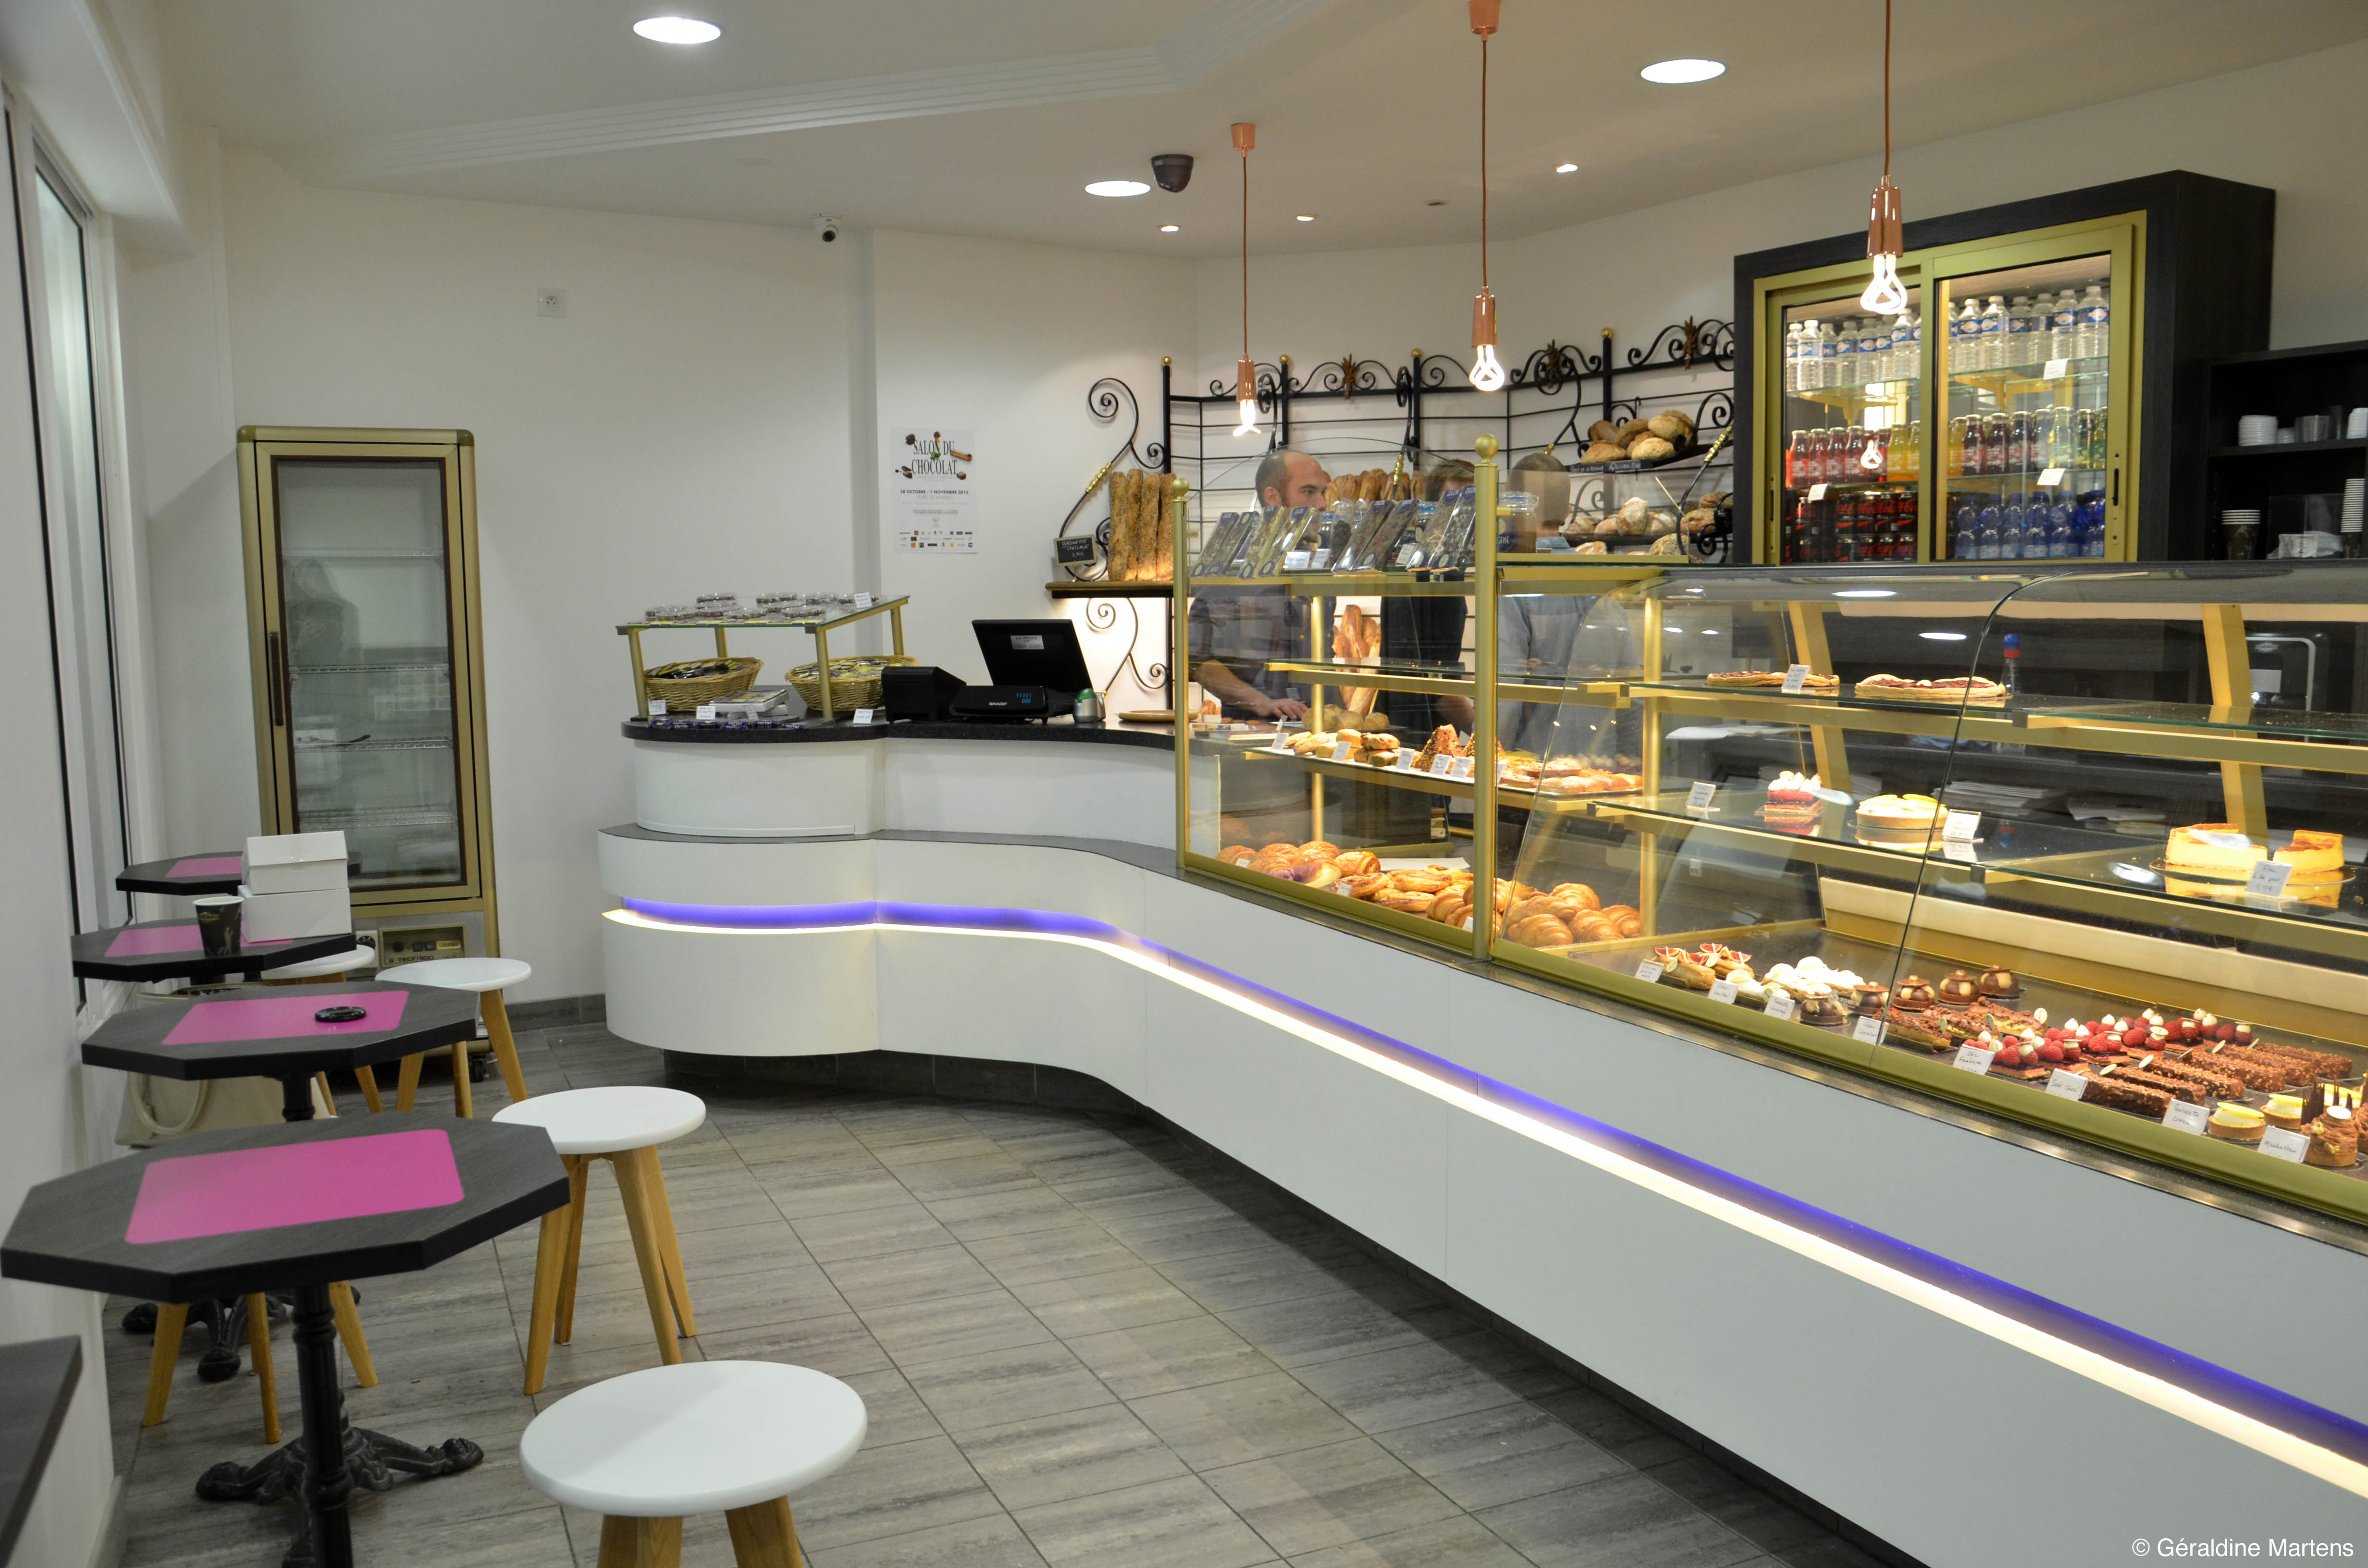 patisserie chatelet